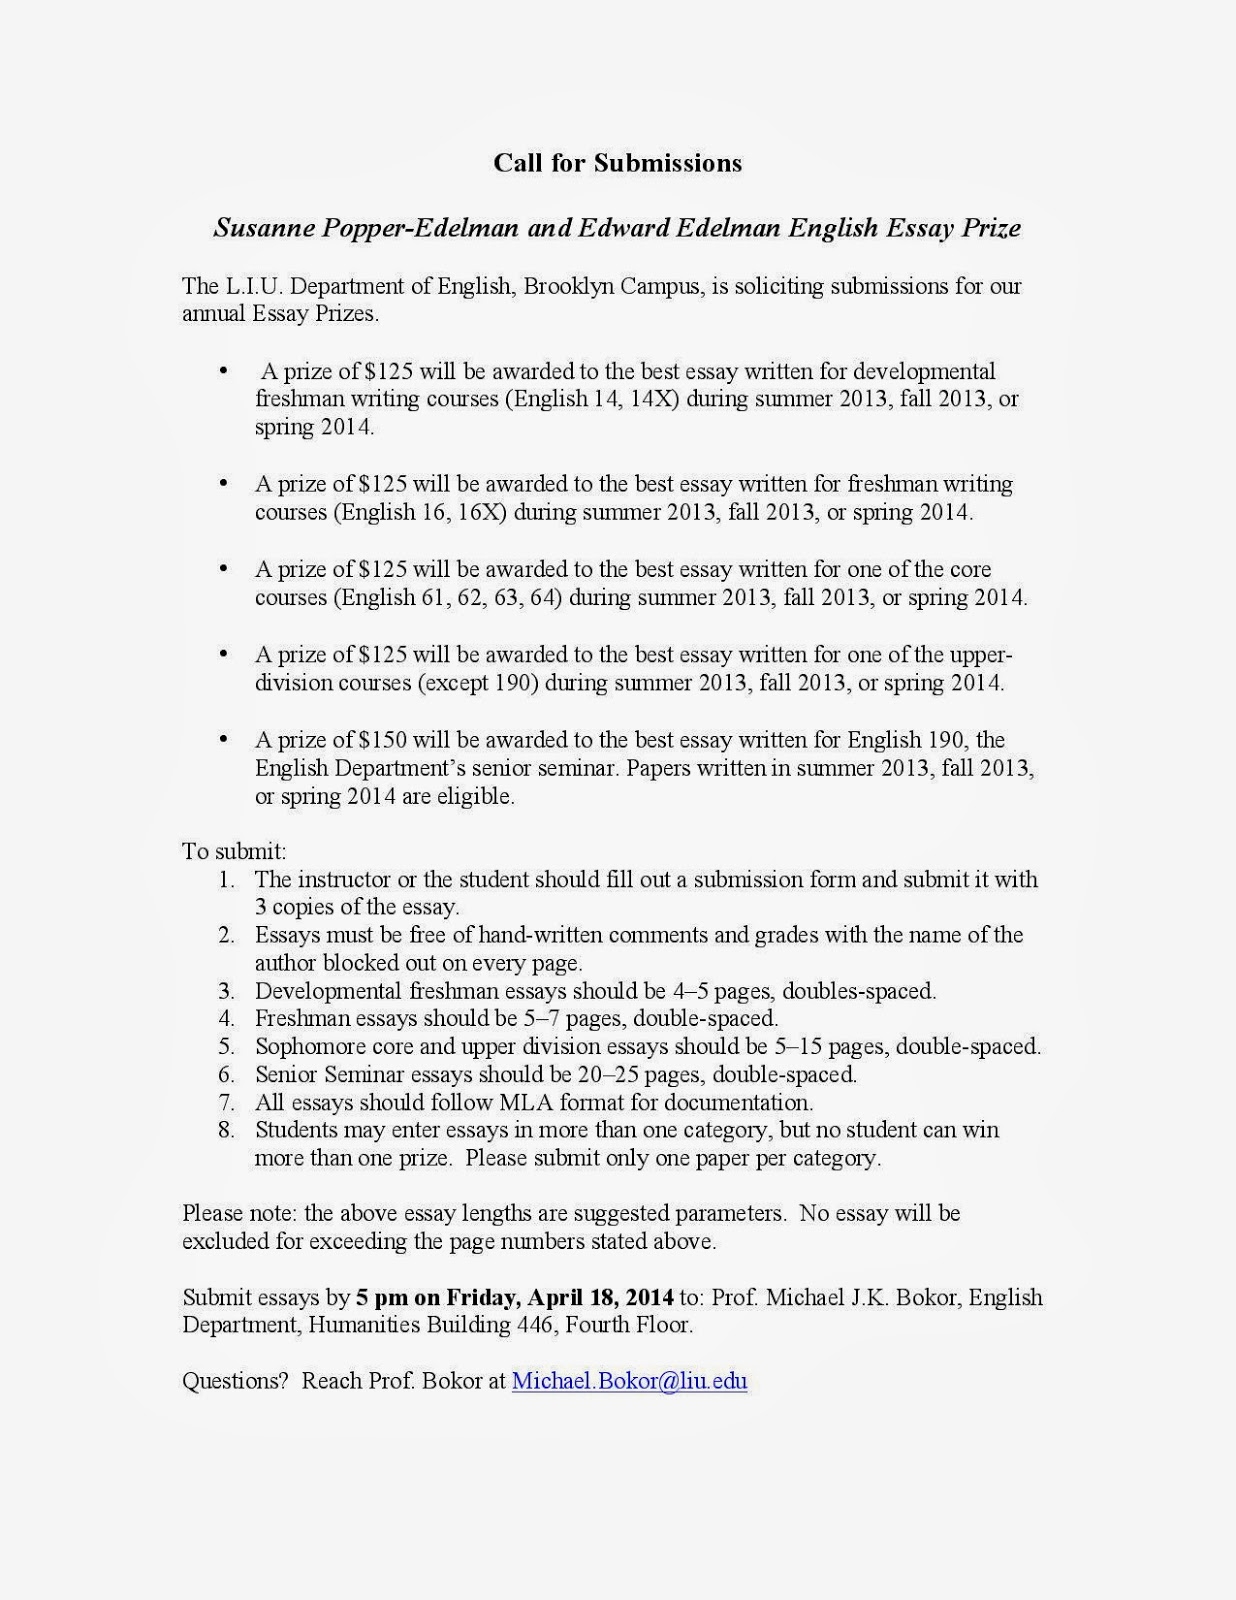 the longest island  call for submissions 2014 popper edelman essay prizes